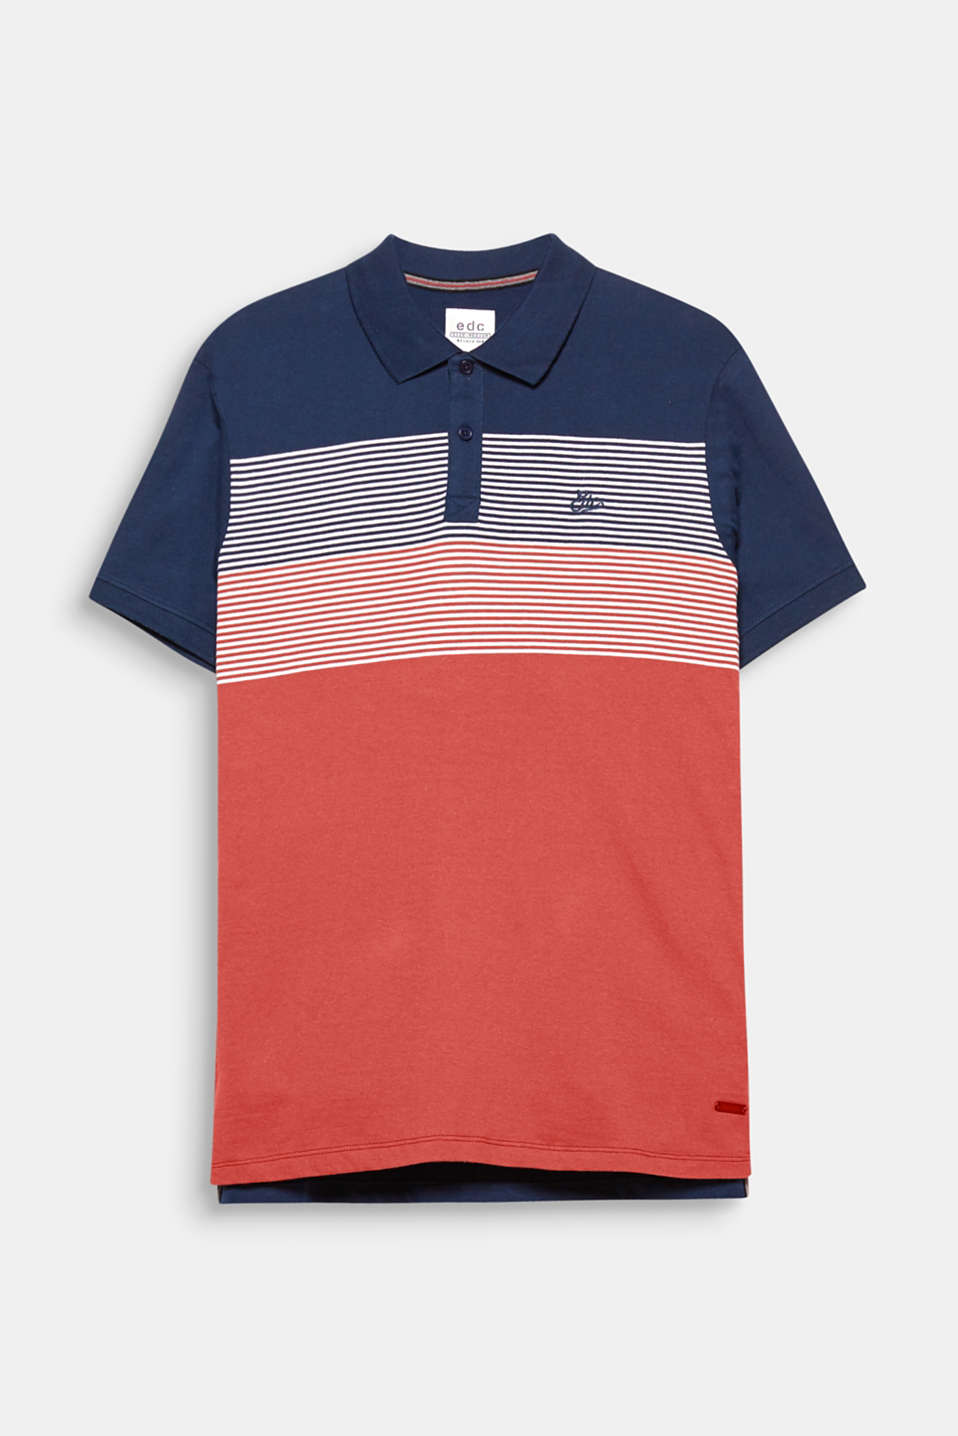 Plain at the back and a versatile striped look on the front: this polo shirt wows with its fresh, sporty style.